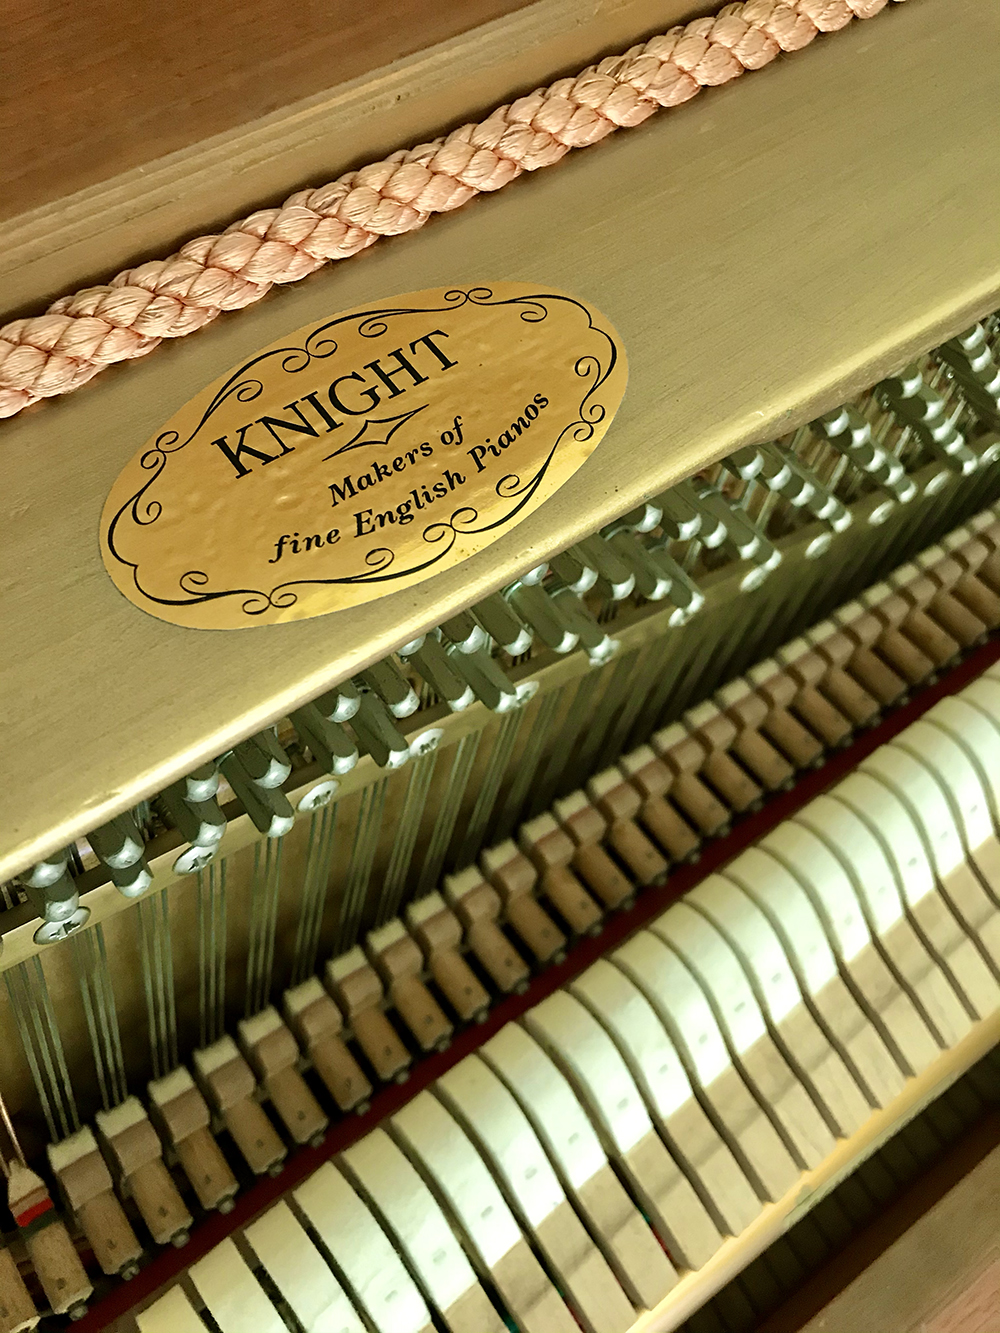 knight-k10-used-upright-Piano-Dorset-for-sale-2.jpg